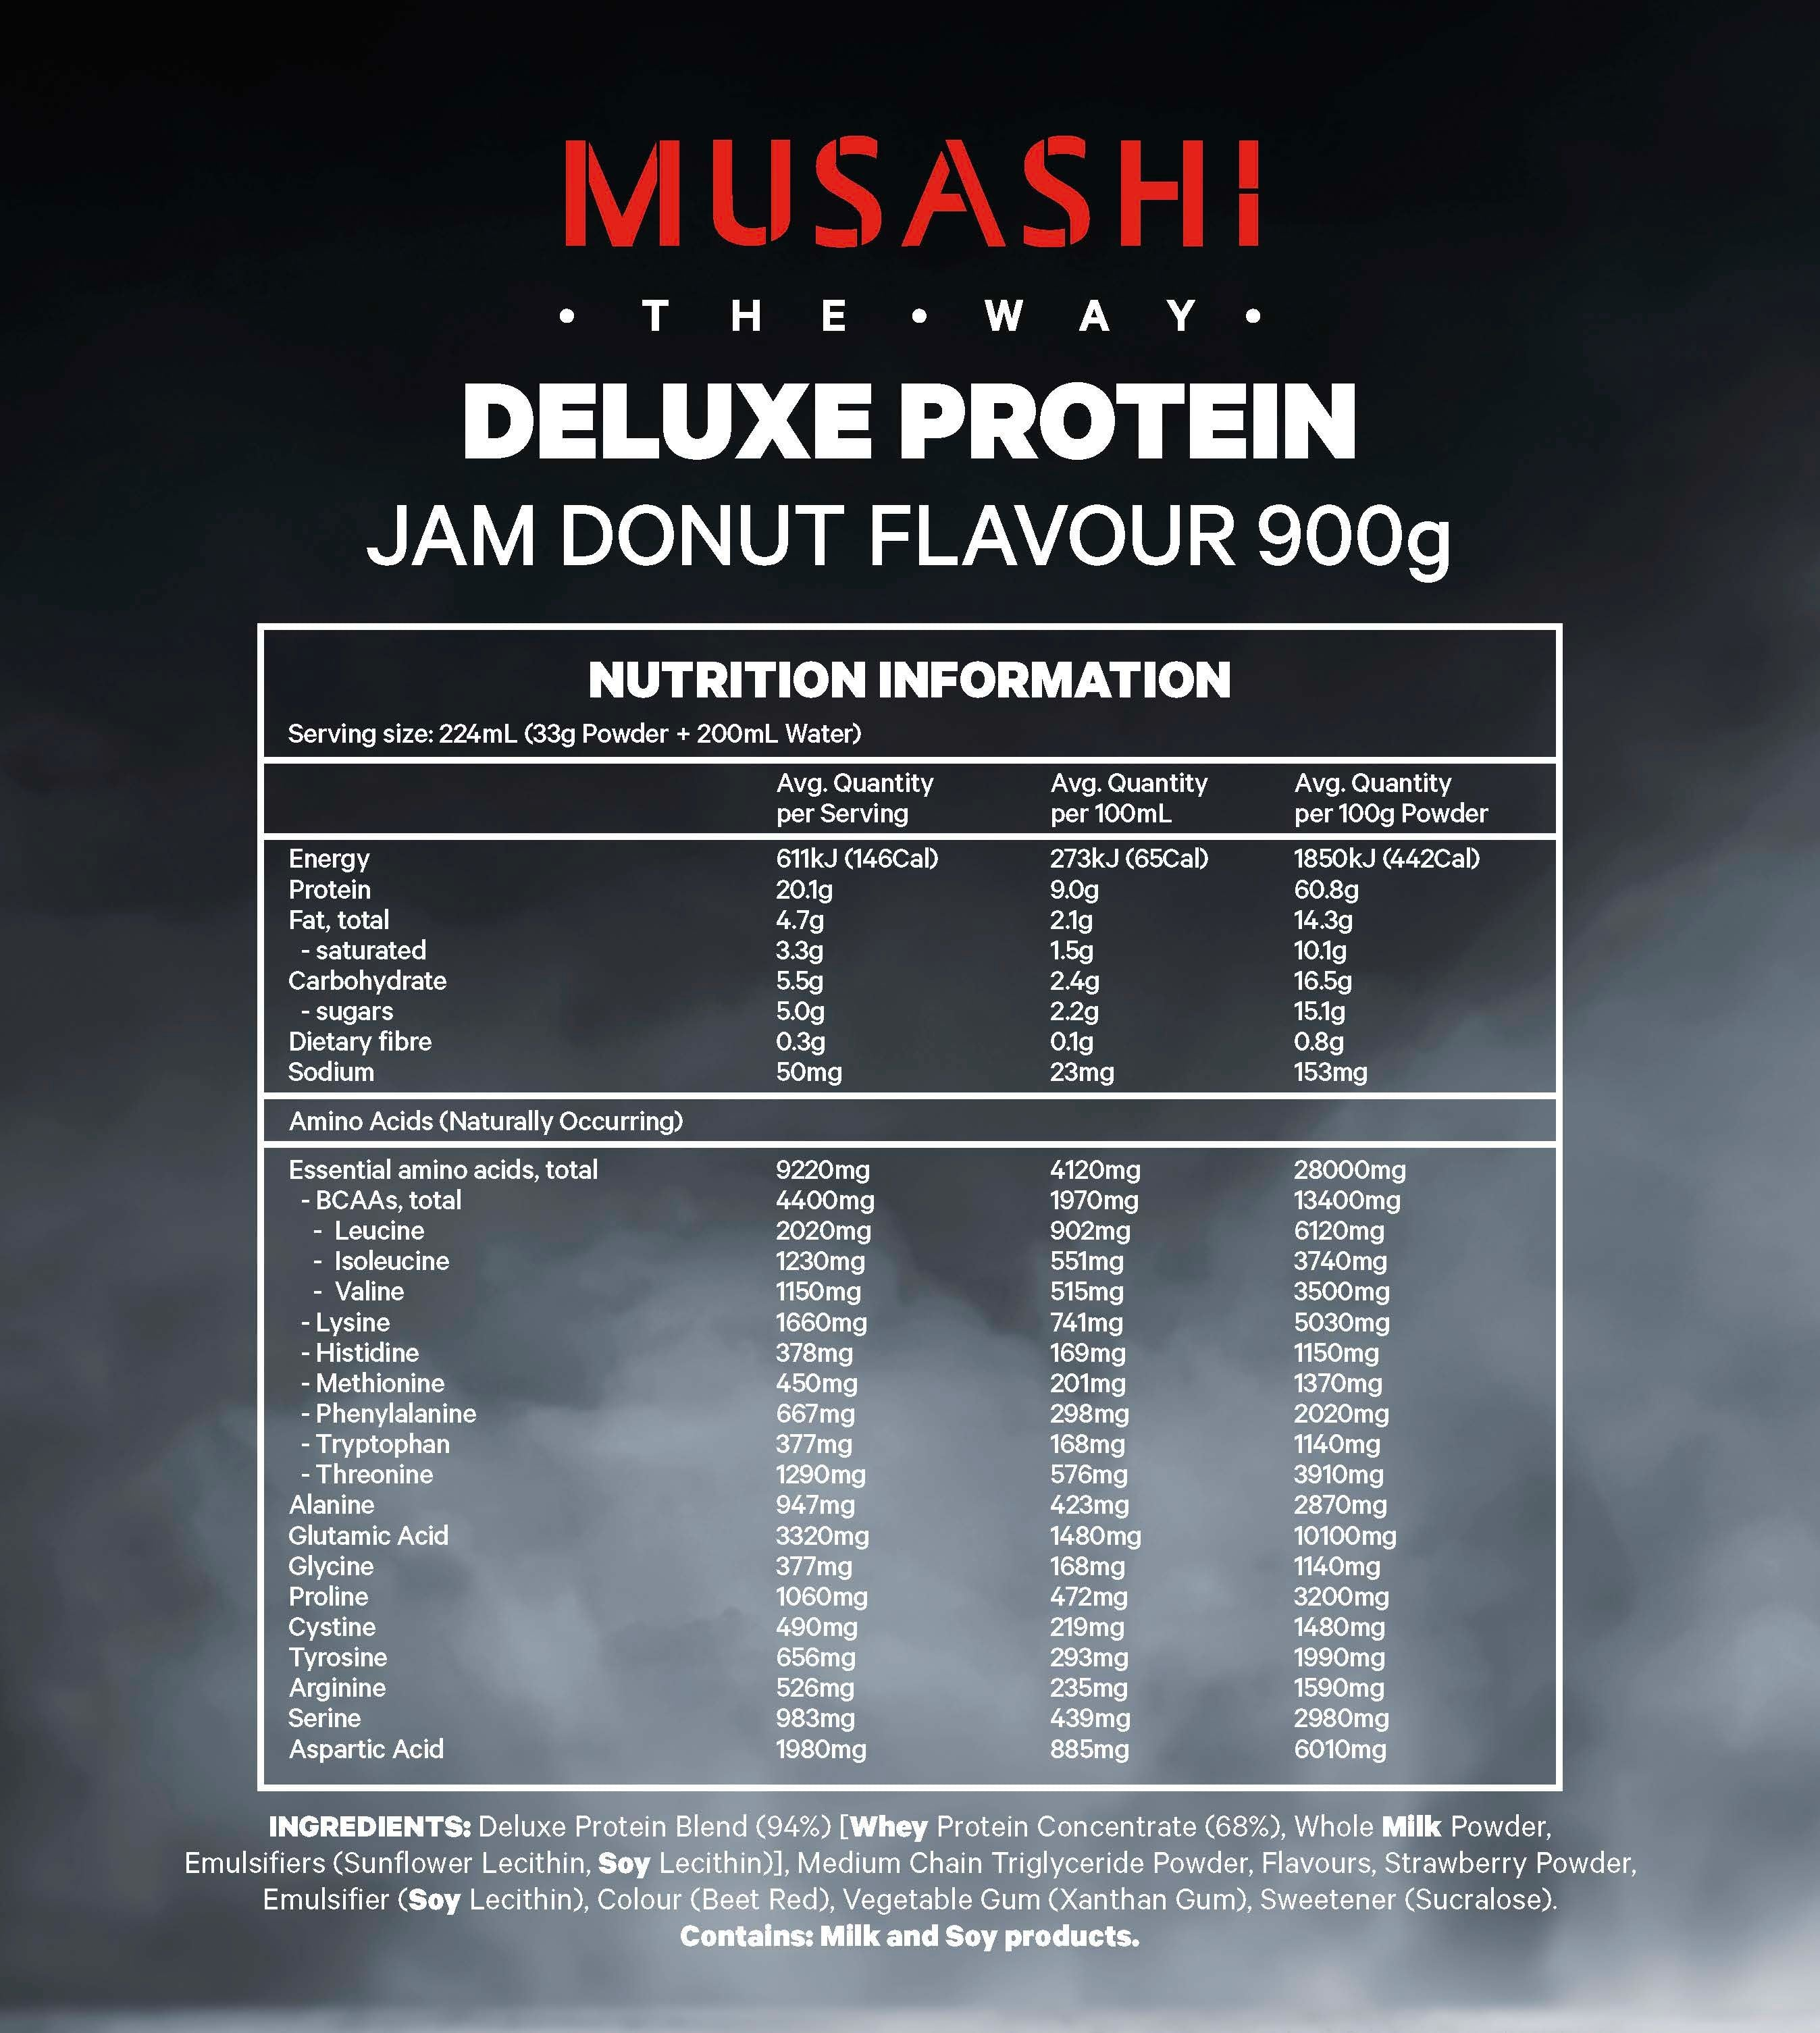 Nutrition Facts For Musashi Deluxe Protein Powder